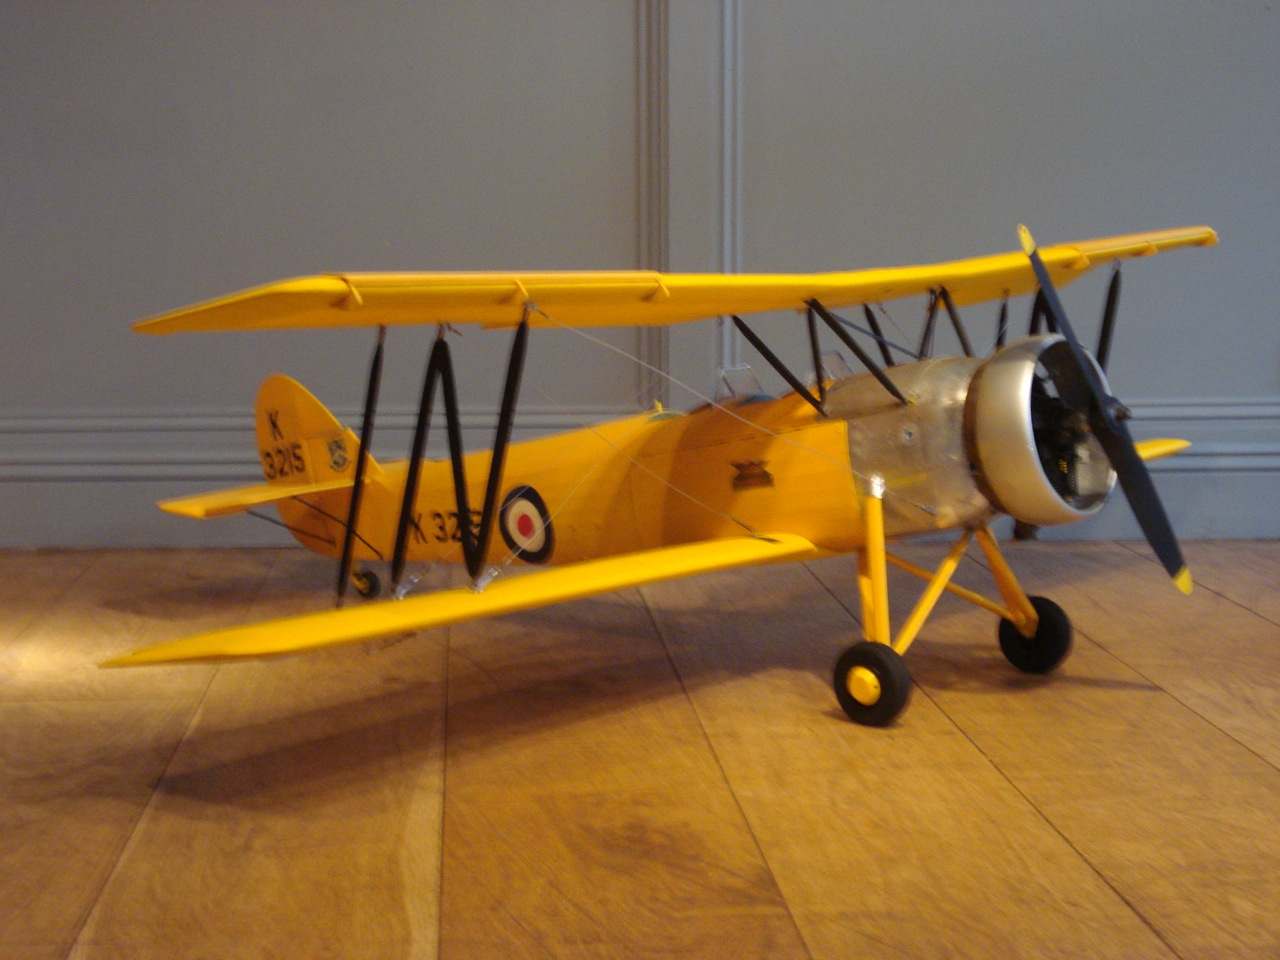 SOLD/HIGH QUALITY VINTAGE MOTORIZED MODEL KIT AIRCRAFT/AVRO TUTOR 62